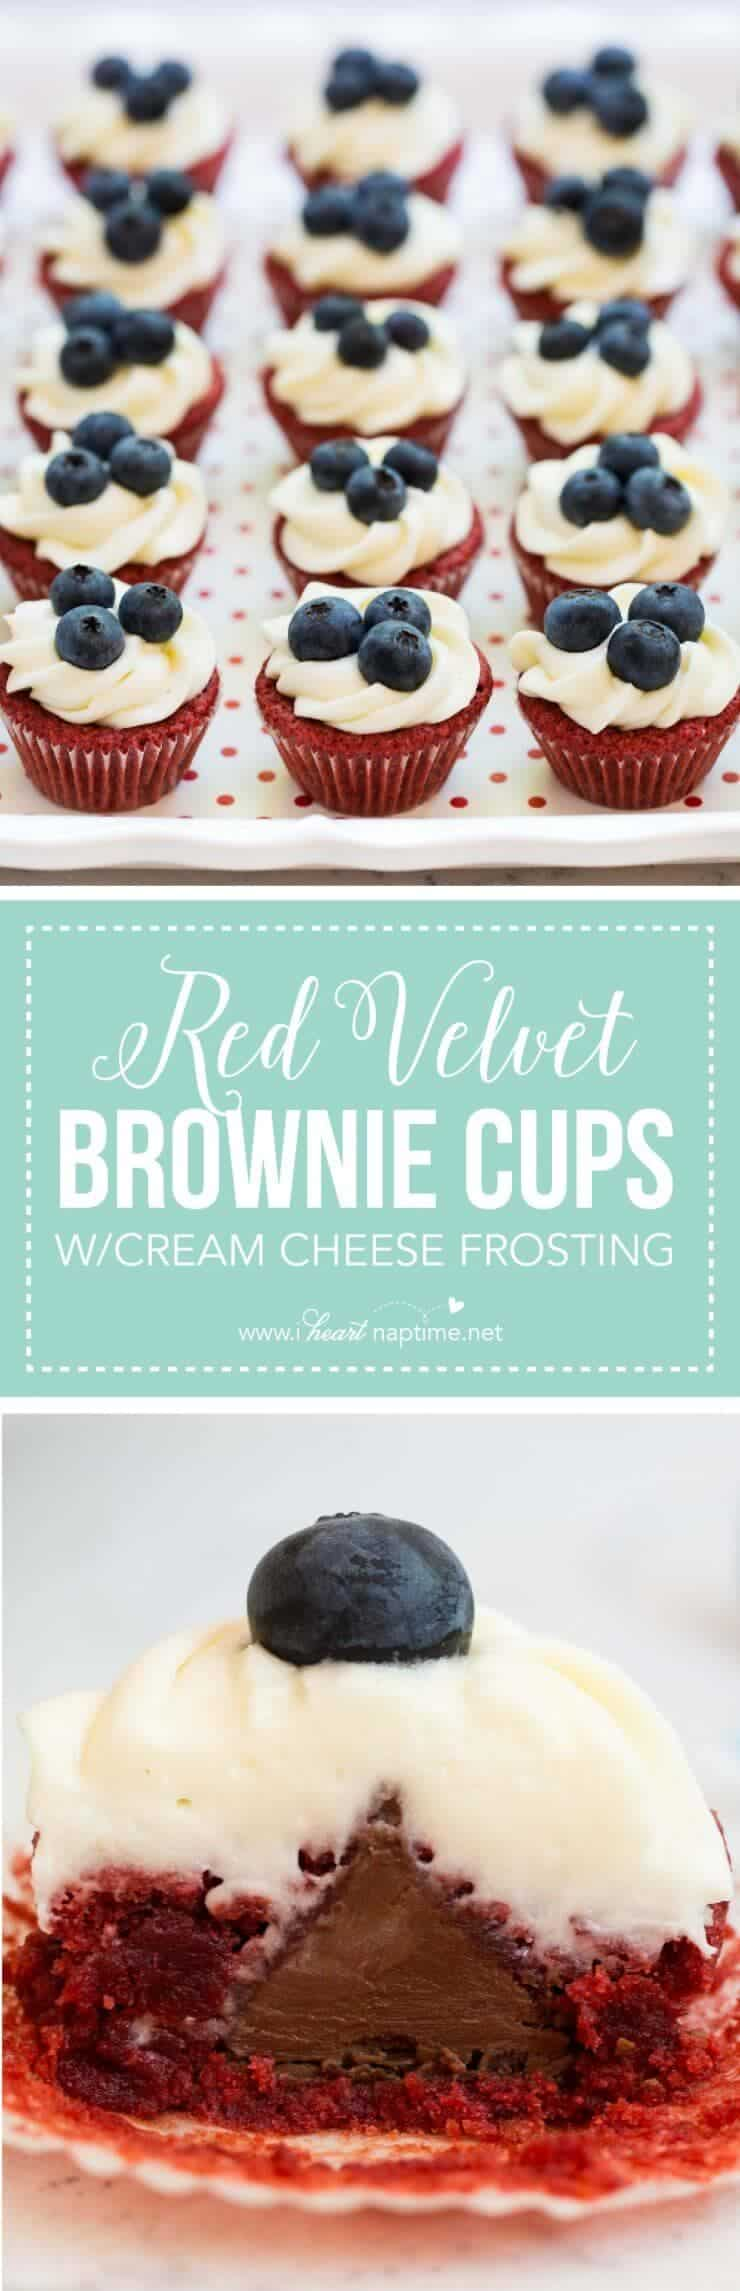 Red Velvet Brownie Cups Recipe with Cream Cheese Frosting -YUM!!